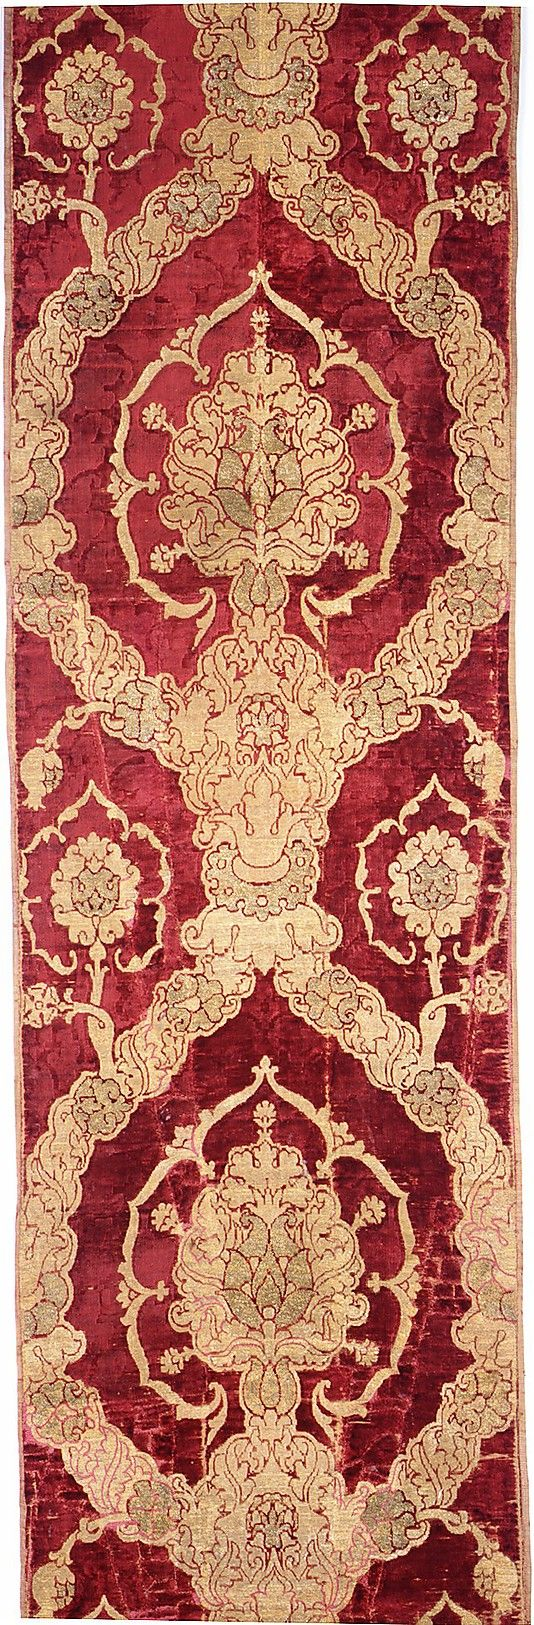 Length of late 15th century Venetian velvet. W 23in L 12ft 4in.